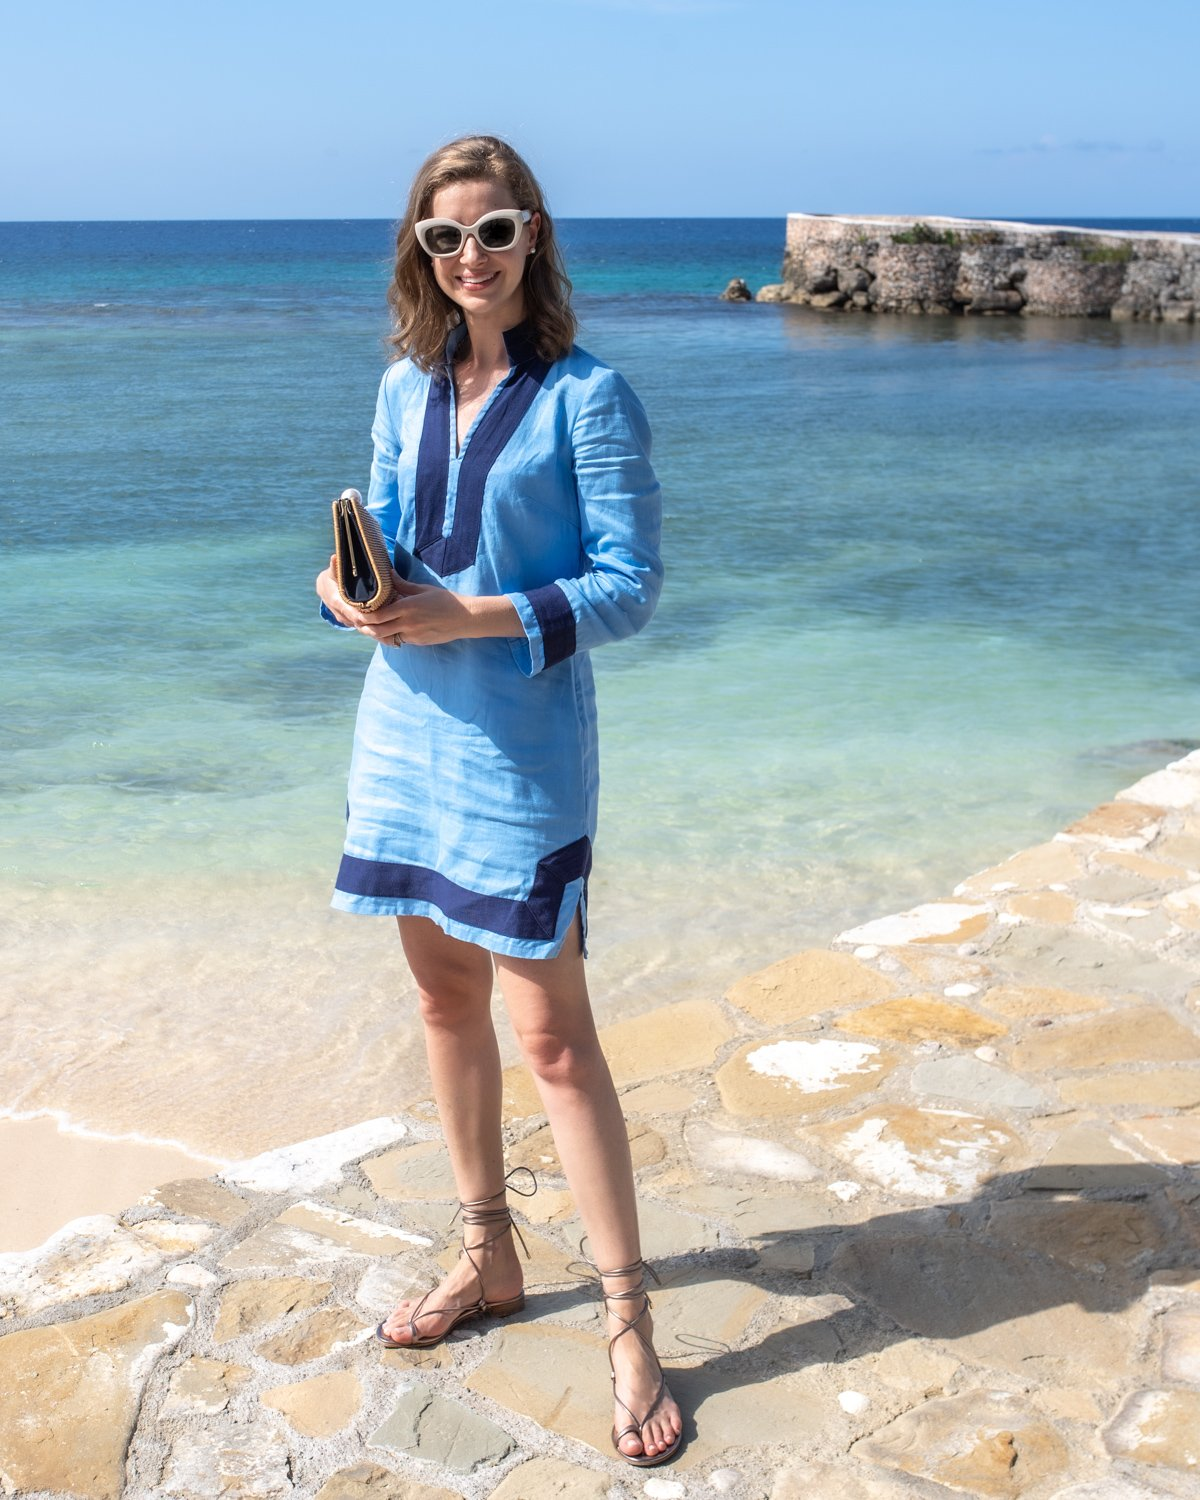 Stacie Flinner Sail to Sable Tunic